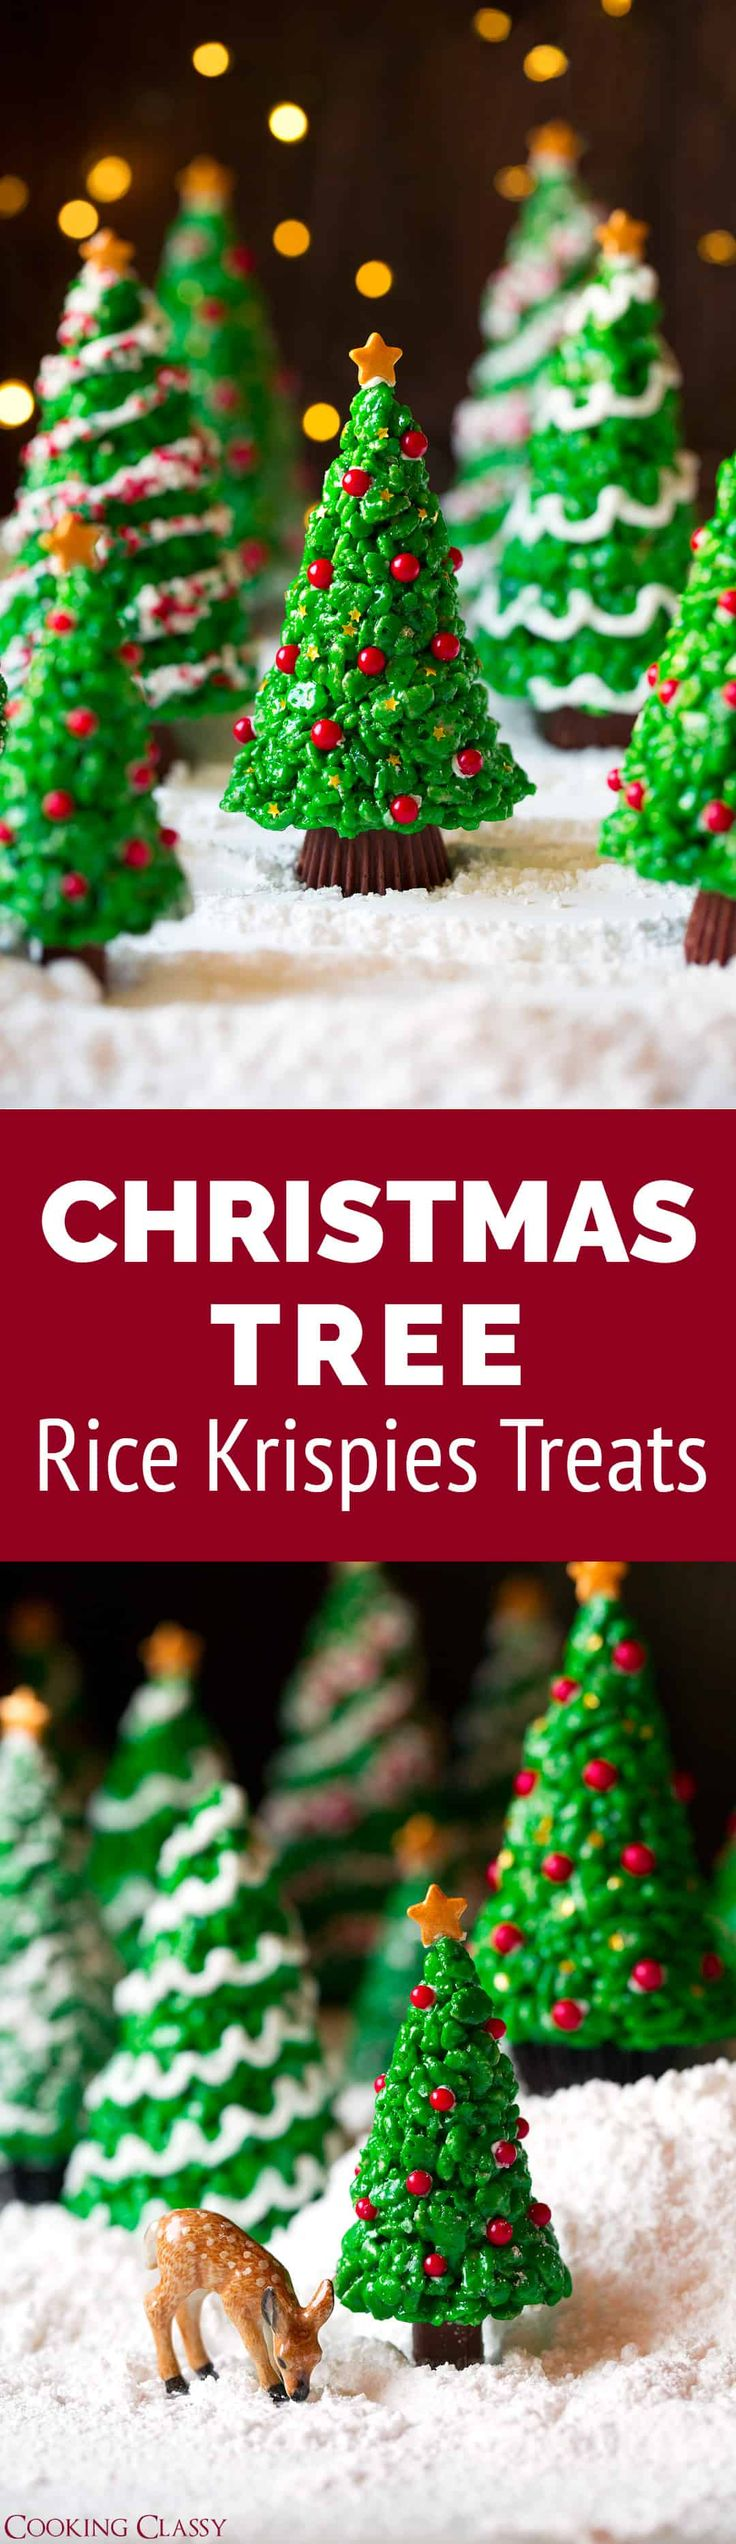 Christmas Tree Rice Krispies Treats - just as much fun to make as they are delicious to eat! Everyone loves these! #christmas #ricekrispies #treat #christmastree #dessert via @cookingclassy